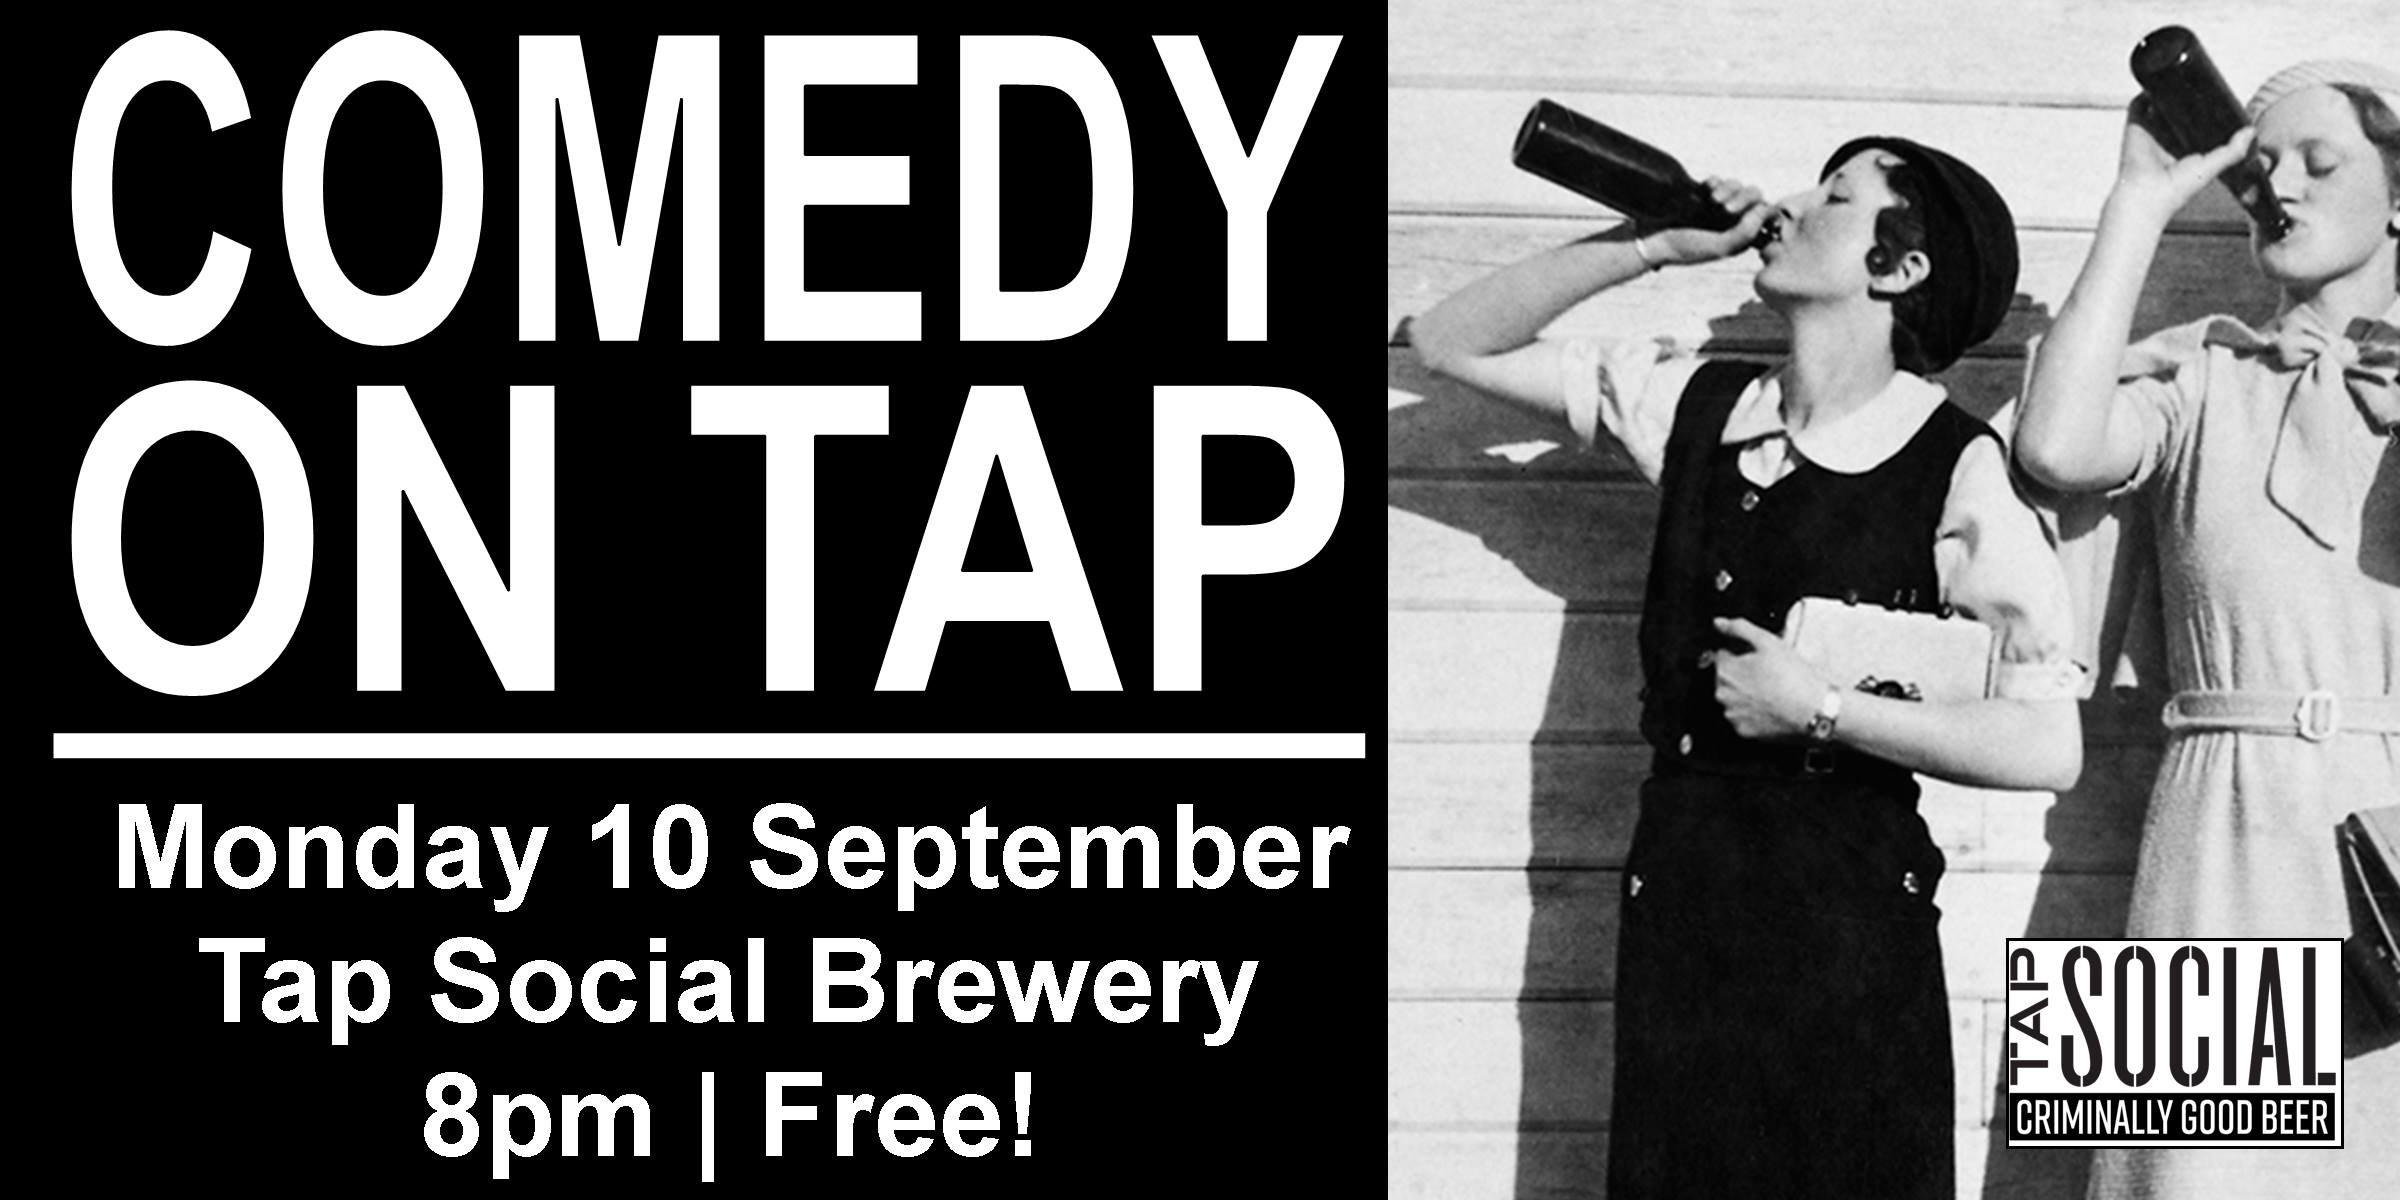 Comedy on Tap is a monthly stand-up show featuring some of the best comedians we could get to come to a brewery on a Monday night! Showcasing top local and national comedians, perfectly paired with Tap Social Movement's craft beer - and the best part is it's all free! (The comedy, not the beer.)  Headlined by the amazing  Aaron Simmonds  (BBC New Comedian finalist 2017. Jewish comedian of the year)  and great comedic talent from all over the UK Hosted by:  Sarah Mann   Feel free to message us with any questions. See you Monday!